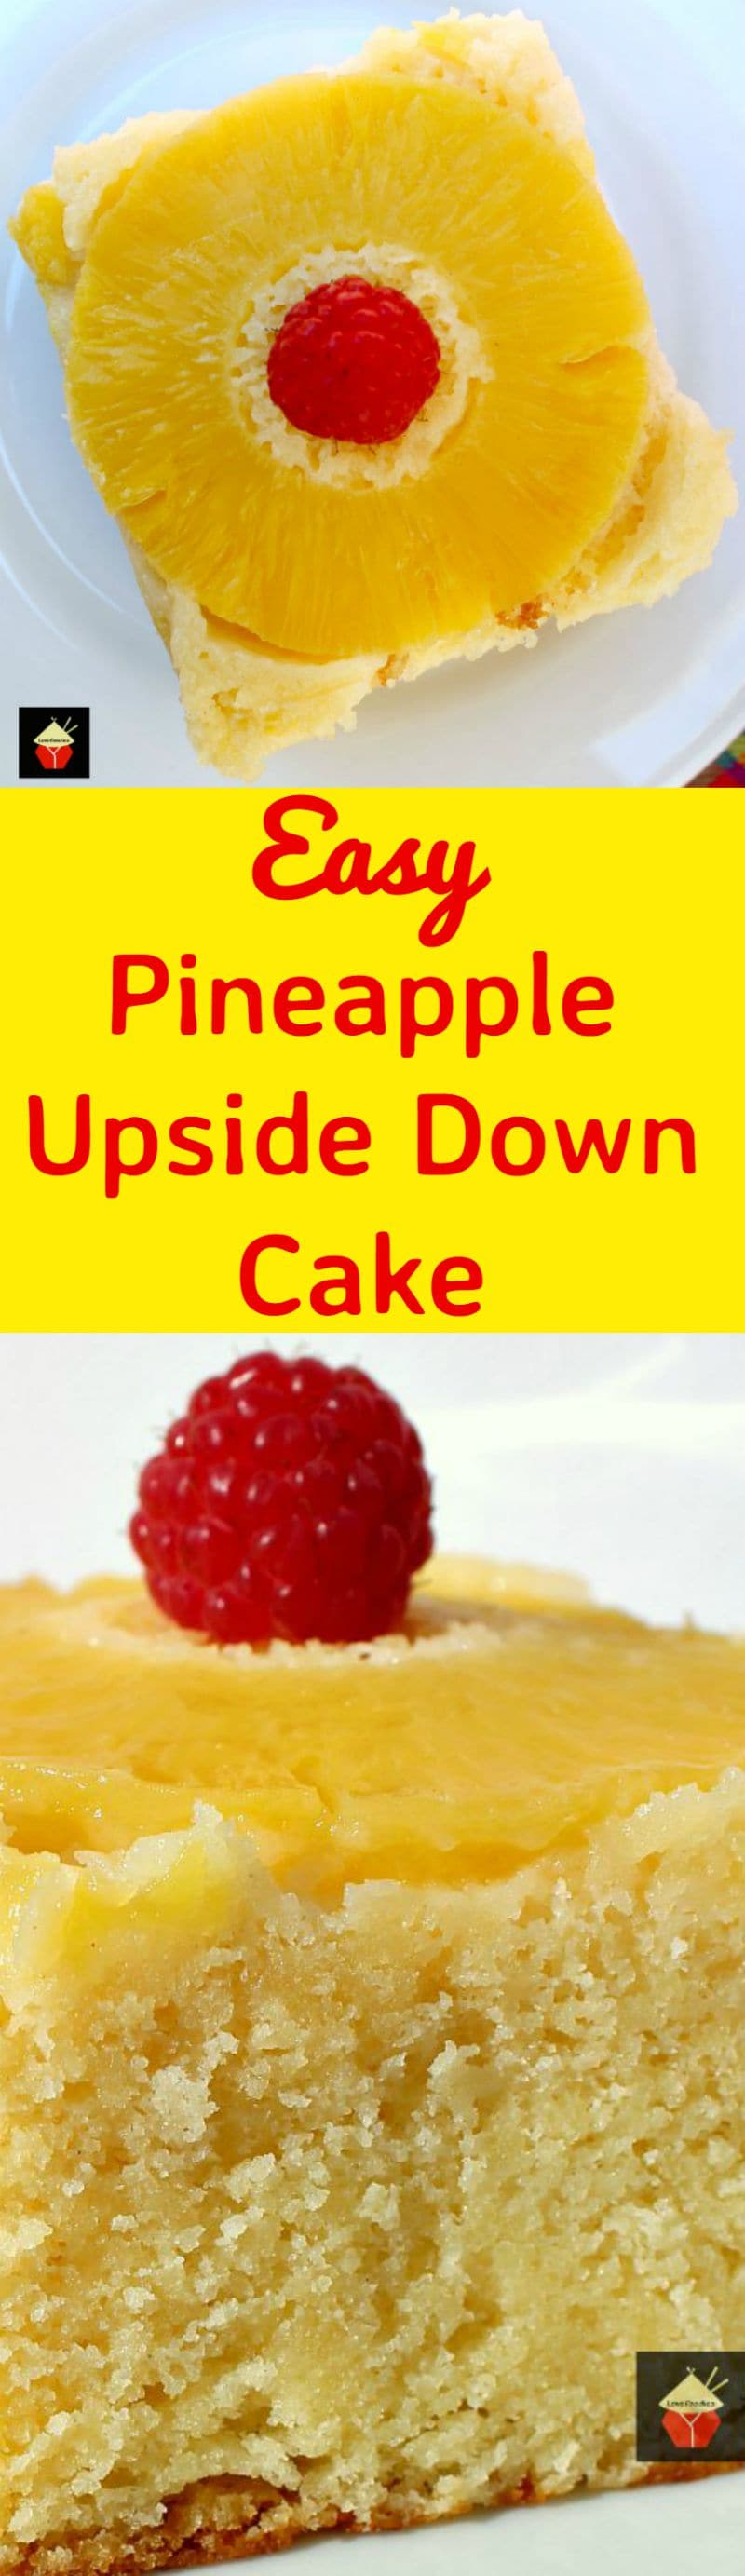 Easy Pineapple Upside Down Cake. This is a very easy, made from ...